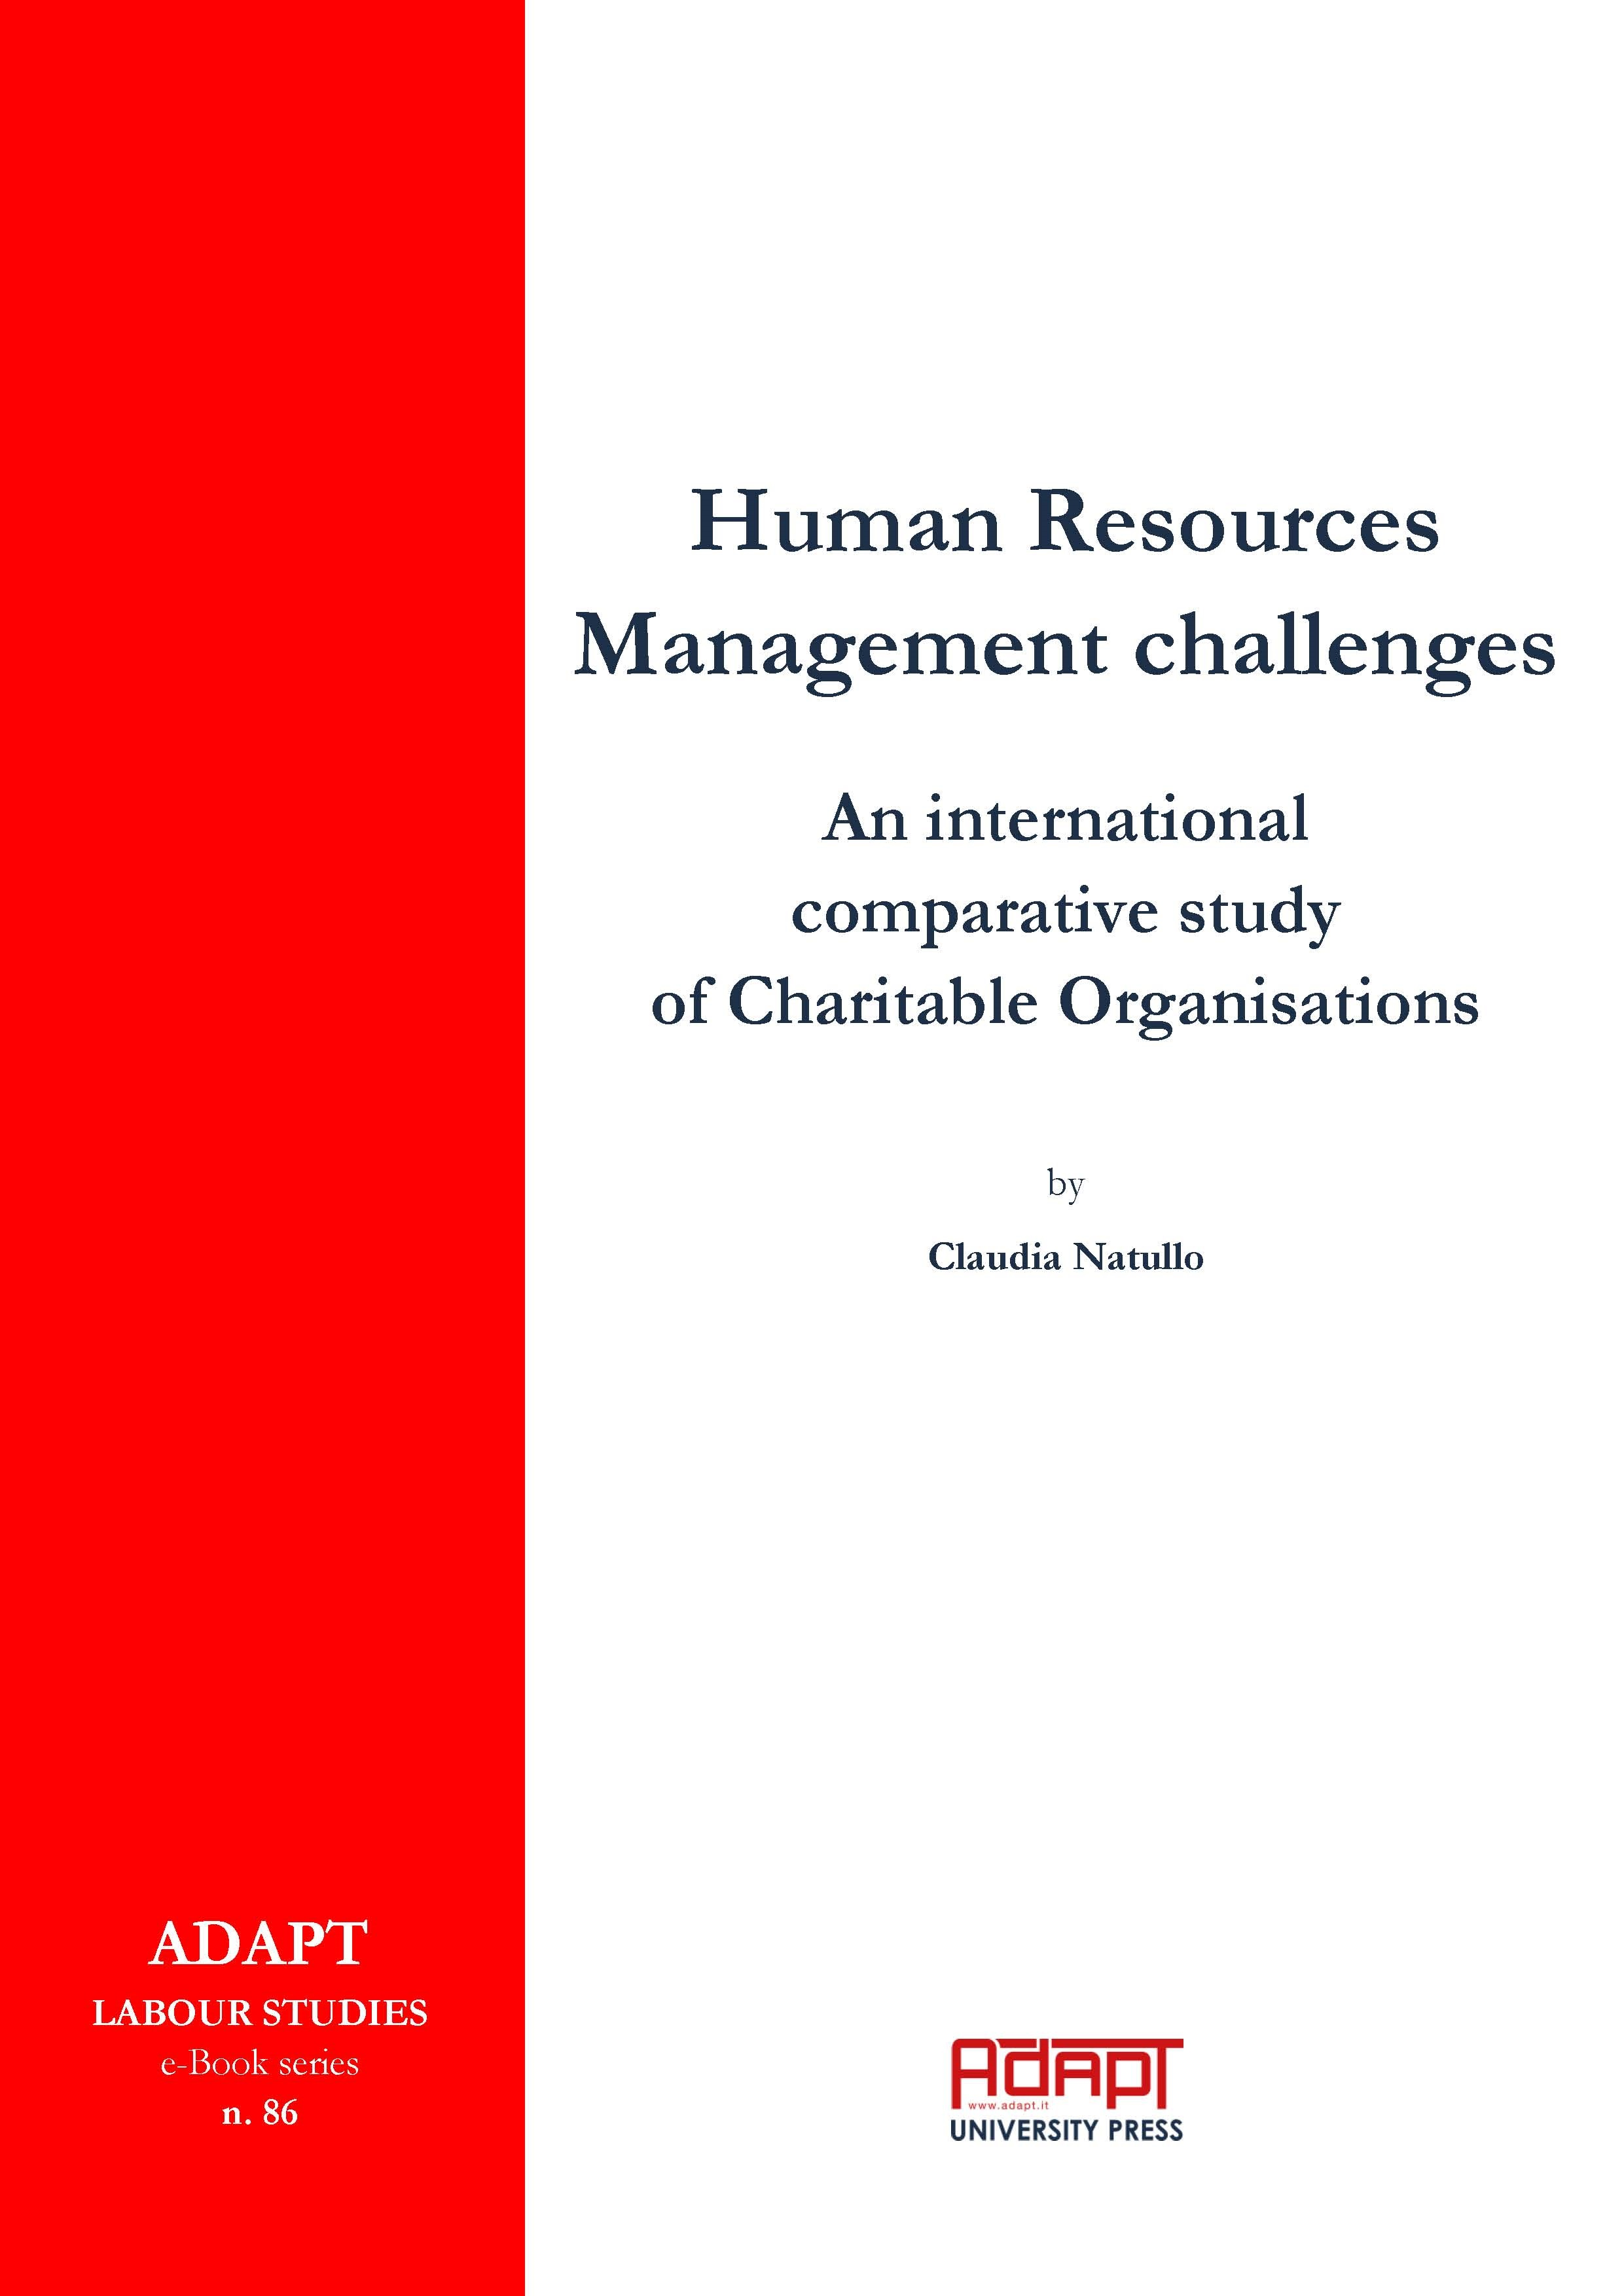 E-book. Natullo Claudia, Human Resources Management challenges : an international comparative study of charitable organisations